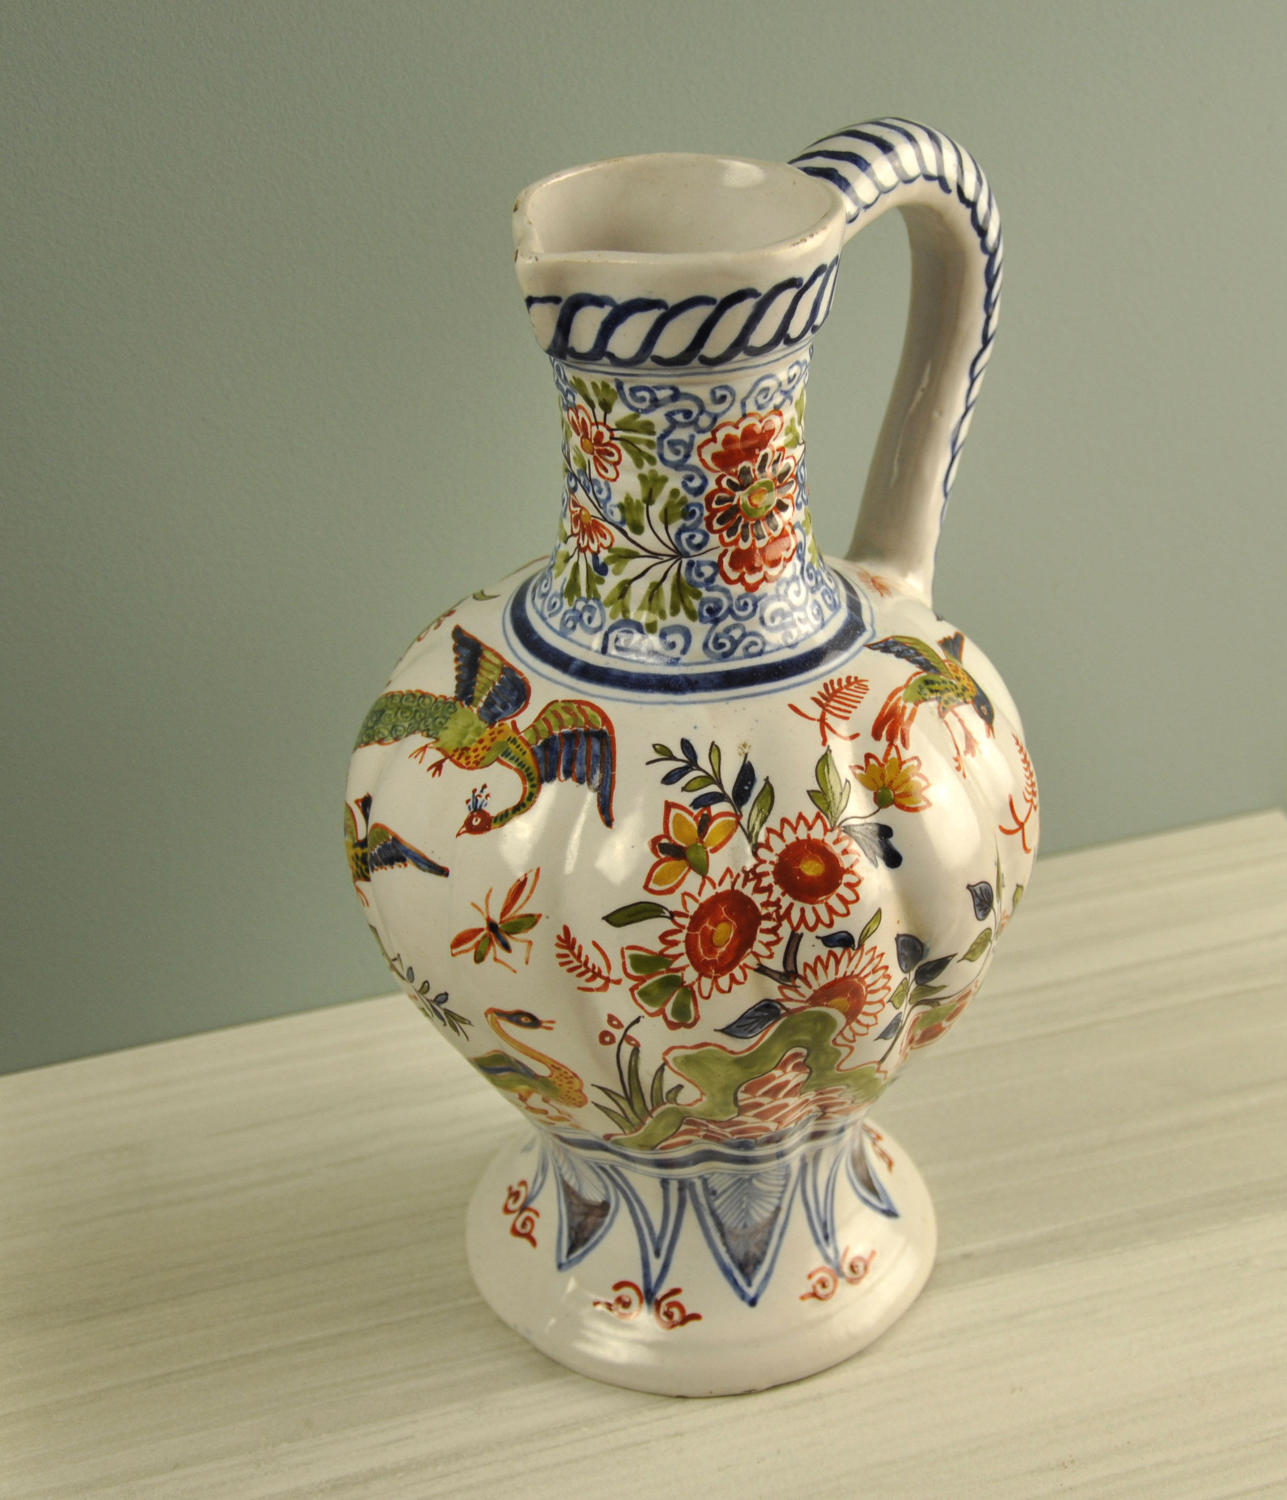 19th century Delft jug